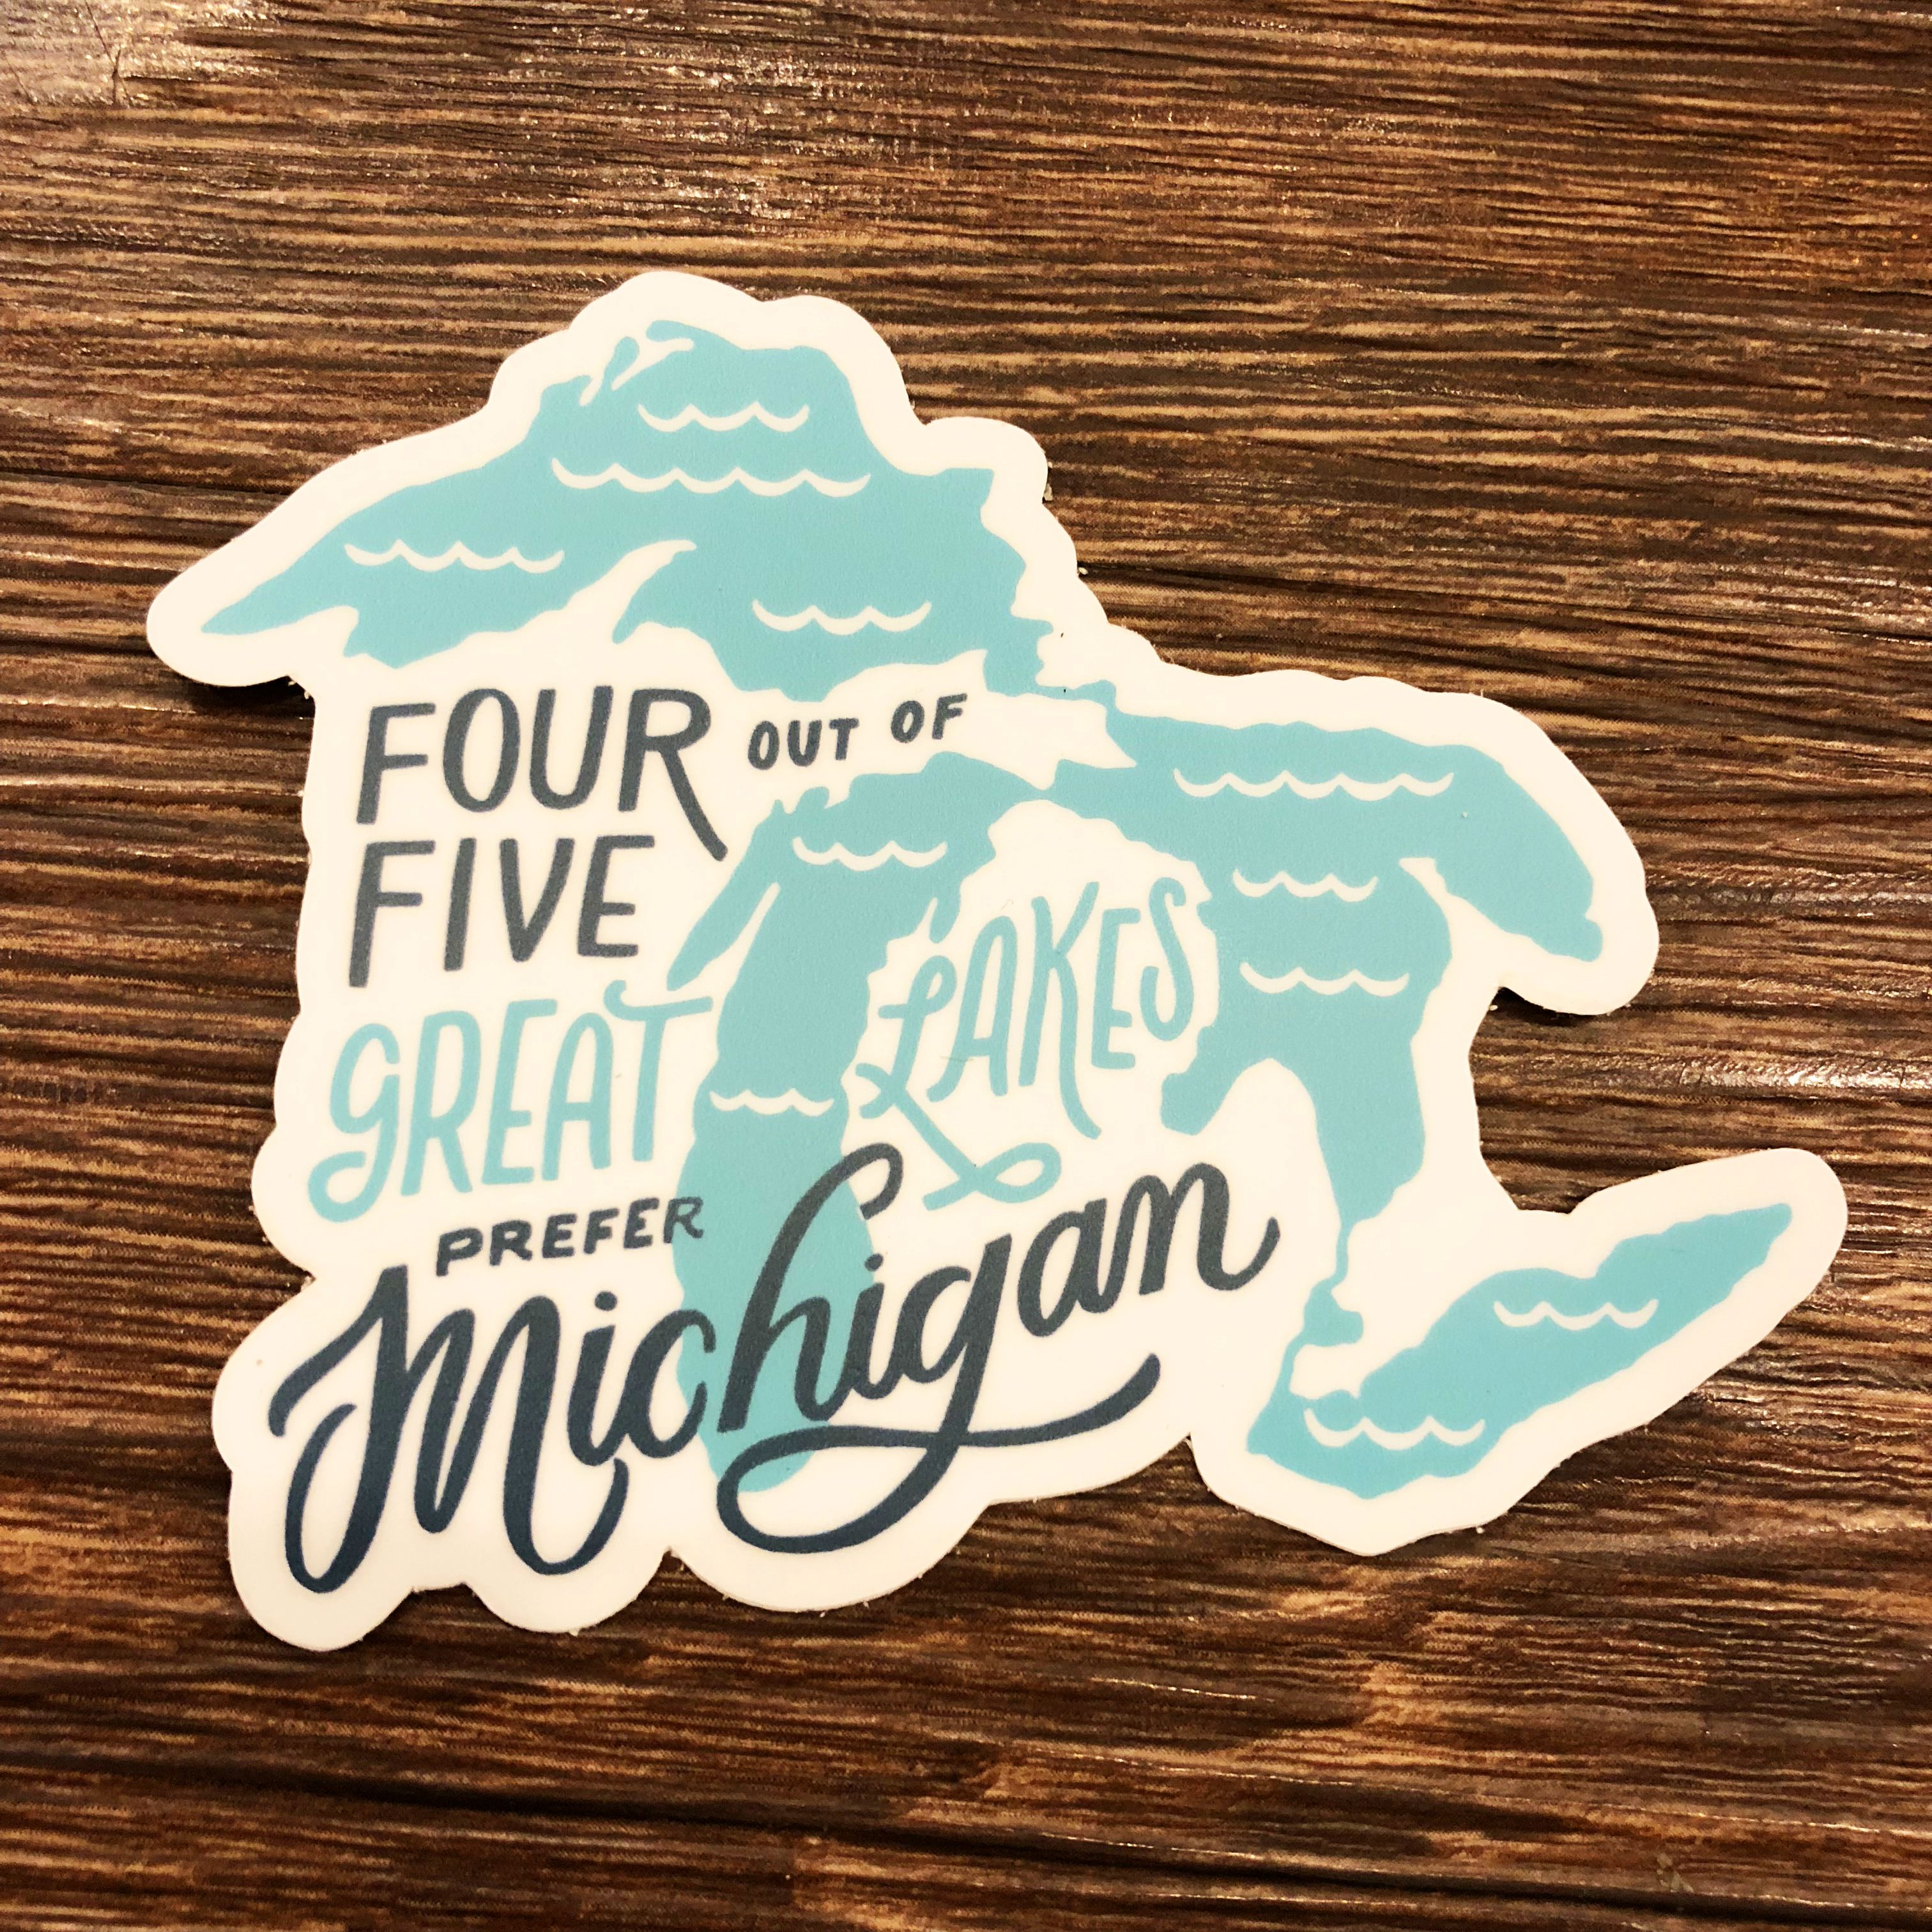 4 Out Of 5 Great Lakes Prefer Michigan Sticker Michigan Sticker Great Lakes Lake Quotes [ jpg ]